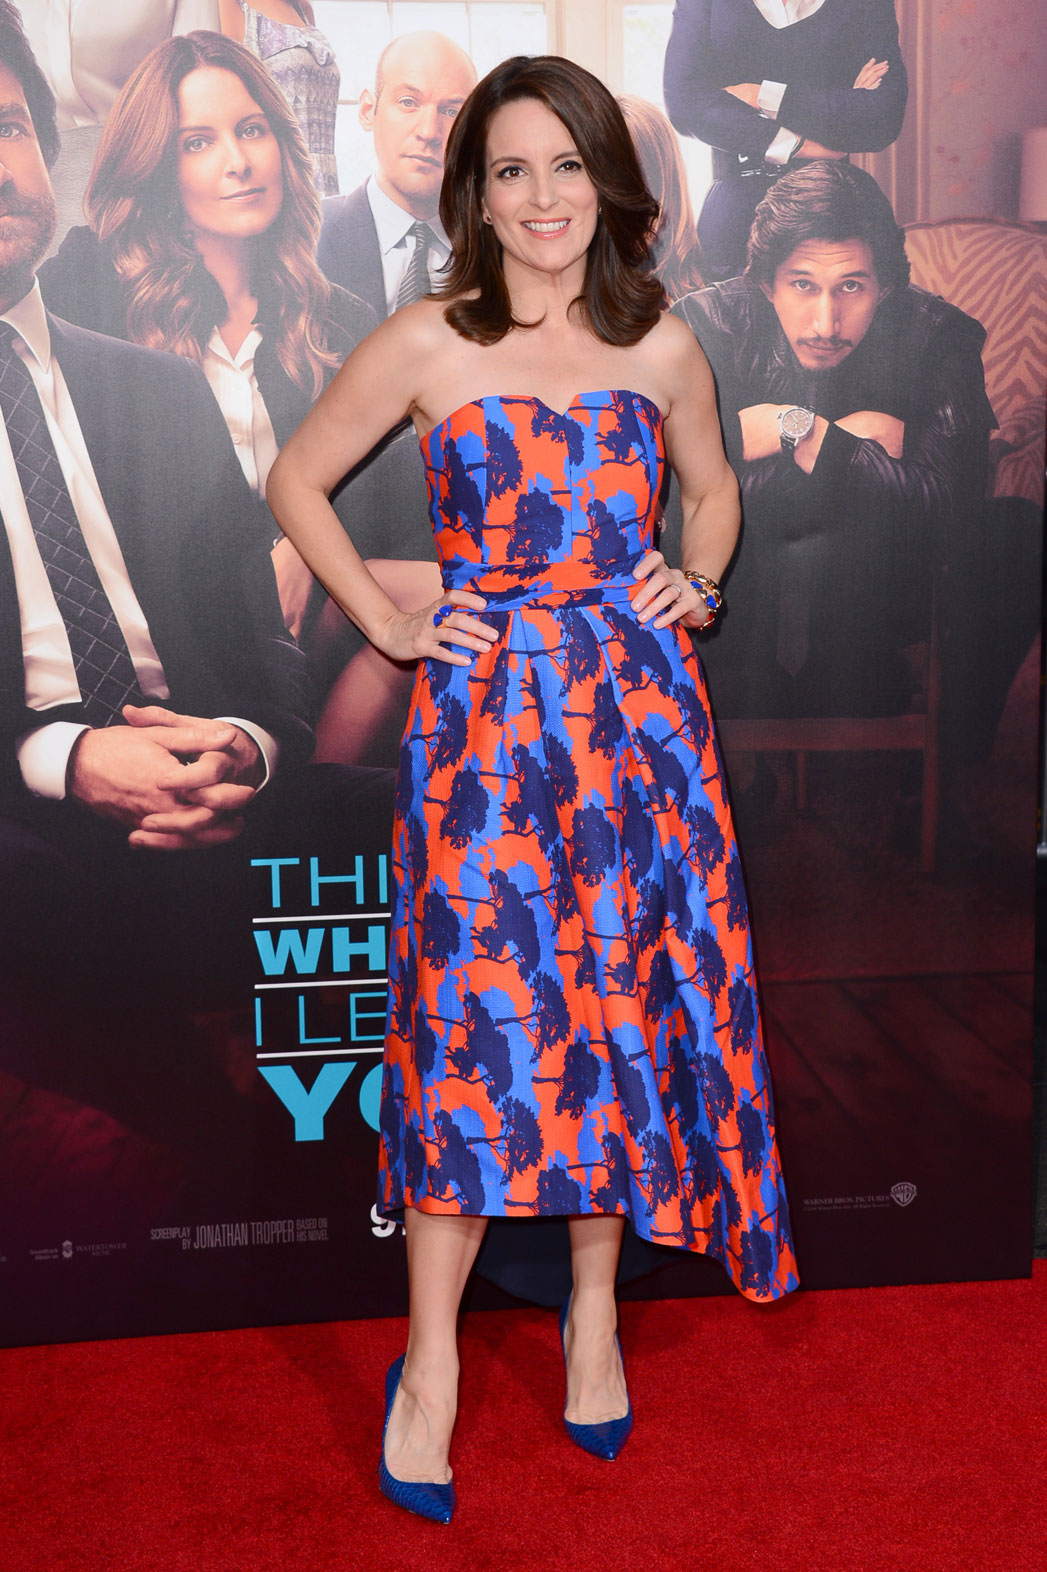 Tina Fey 'This Is Where I Leave You' Premiere - P 2014